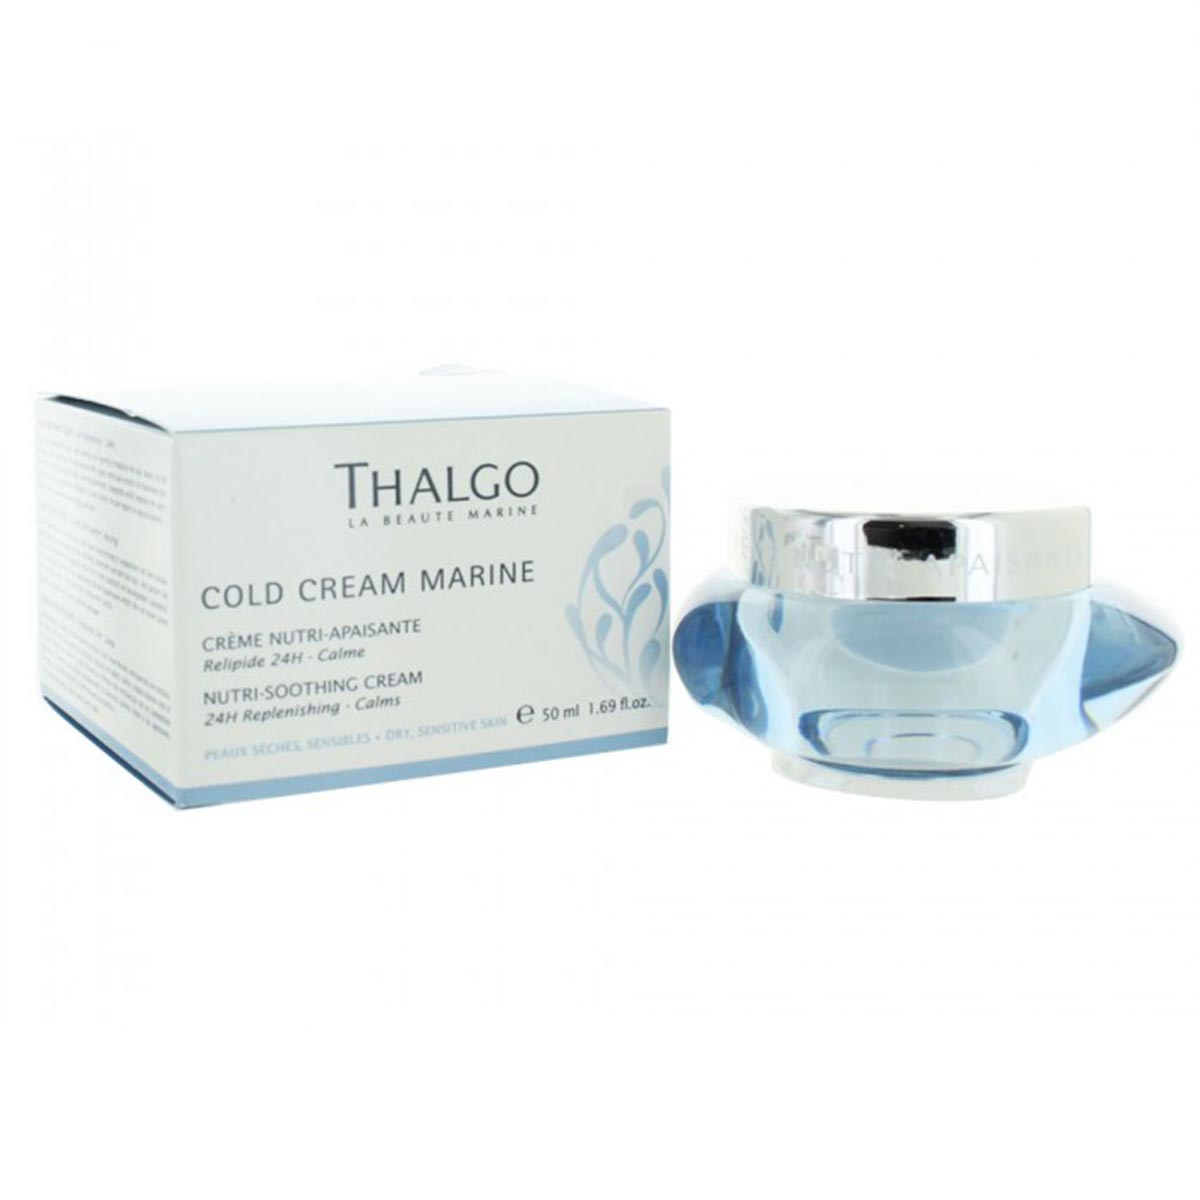 Thalgo cold cream marine nutri soothing creme 50ml